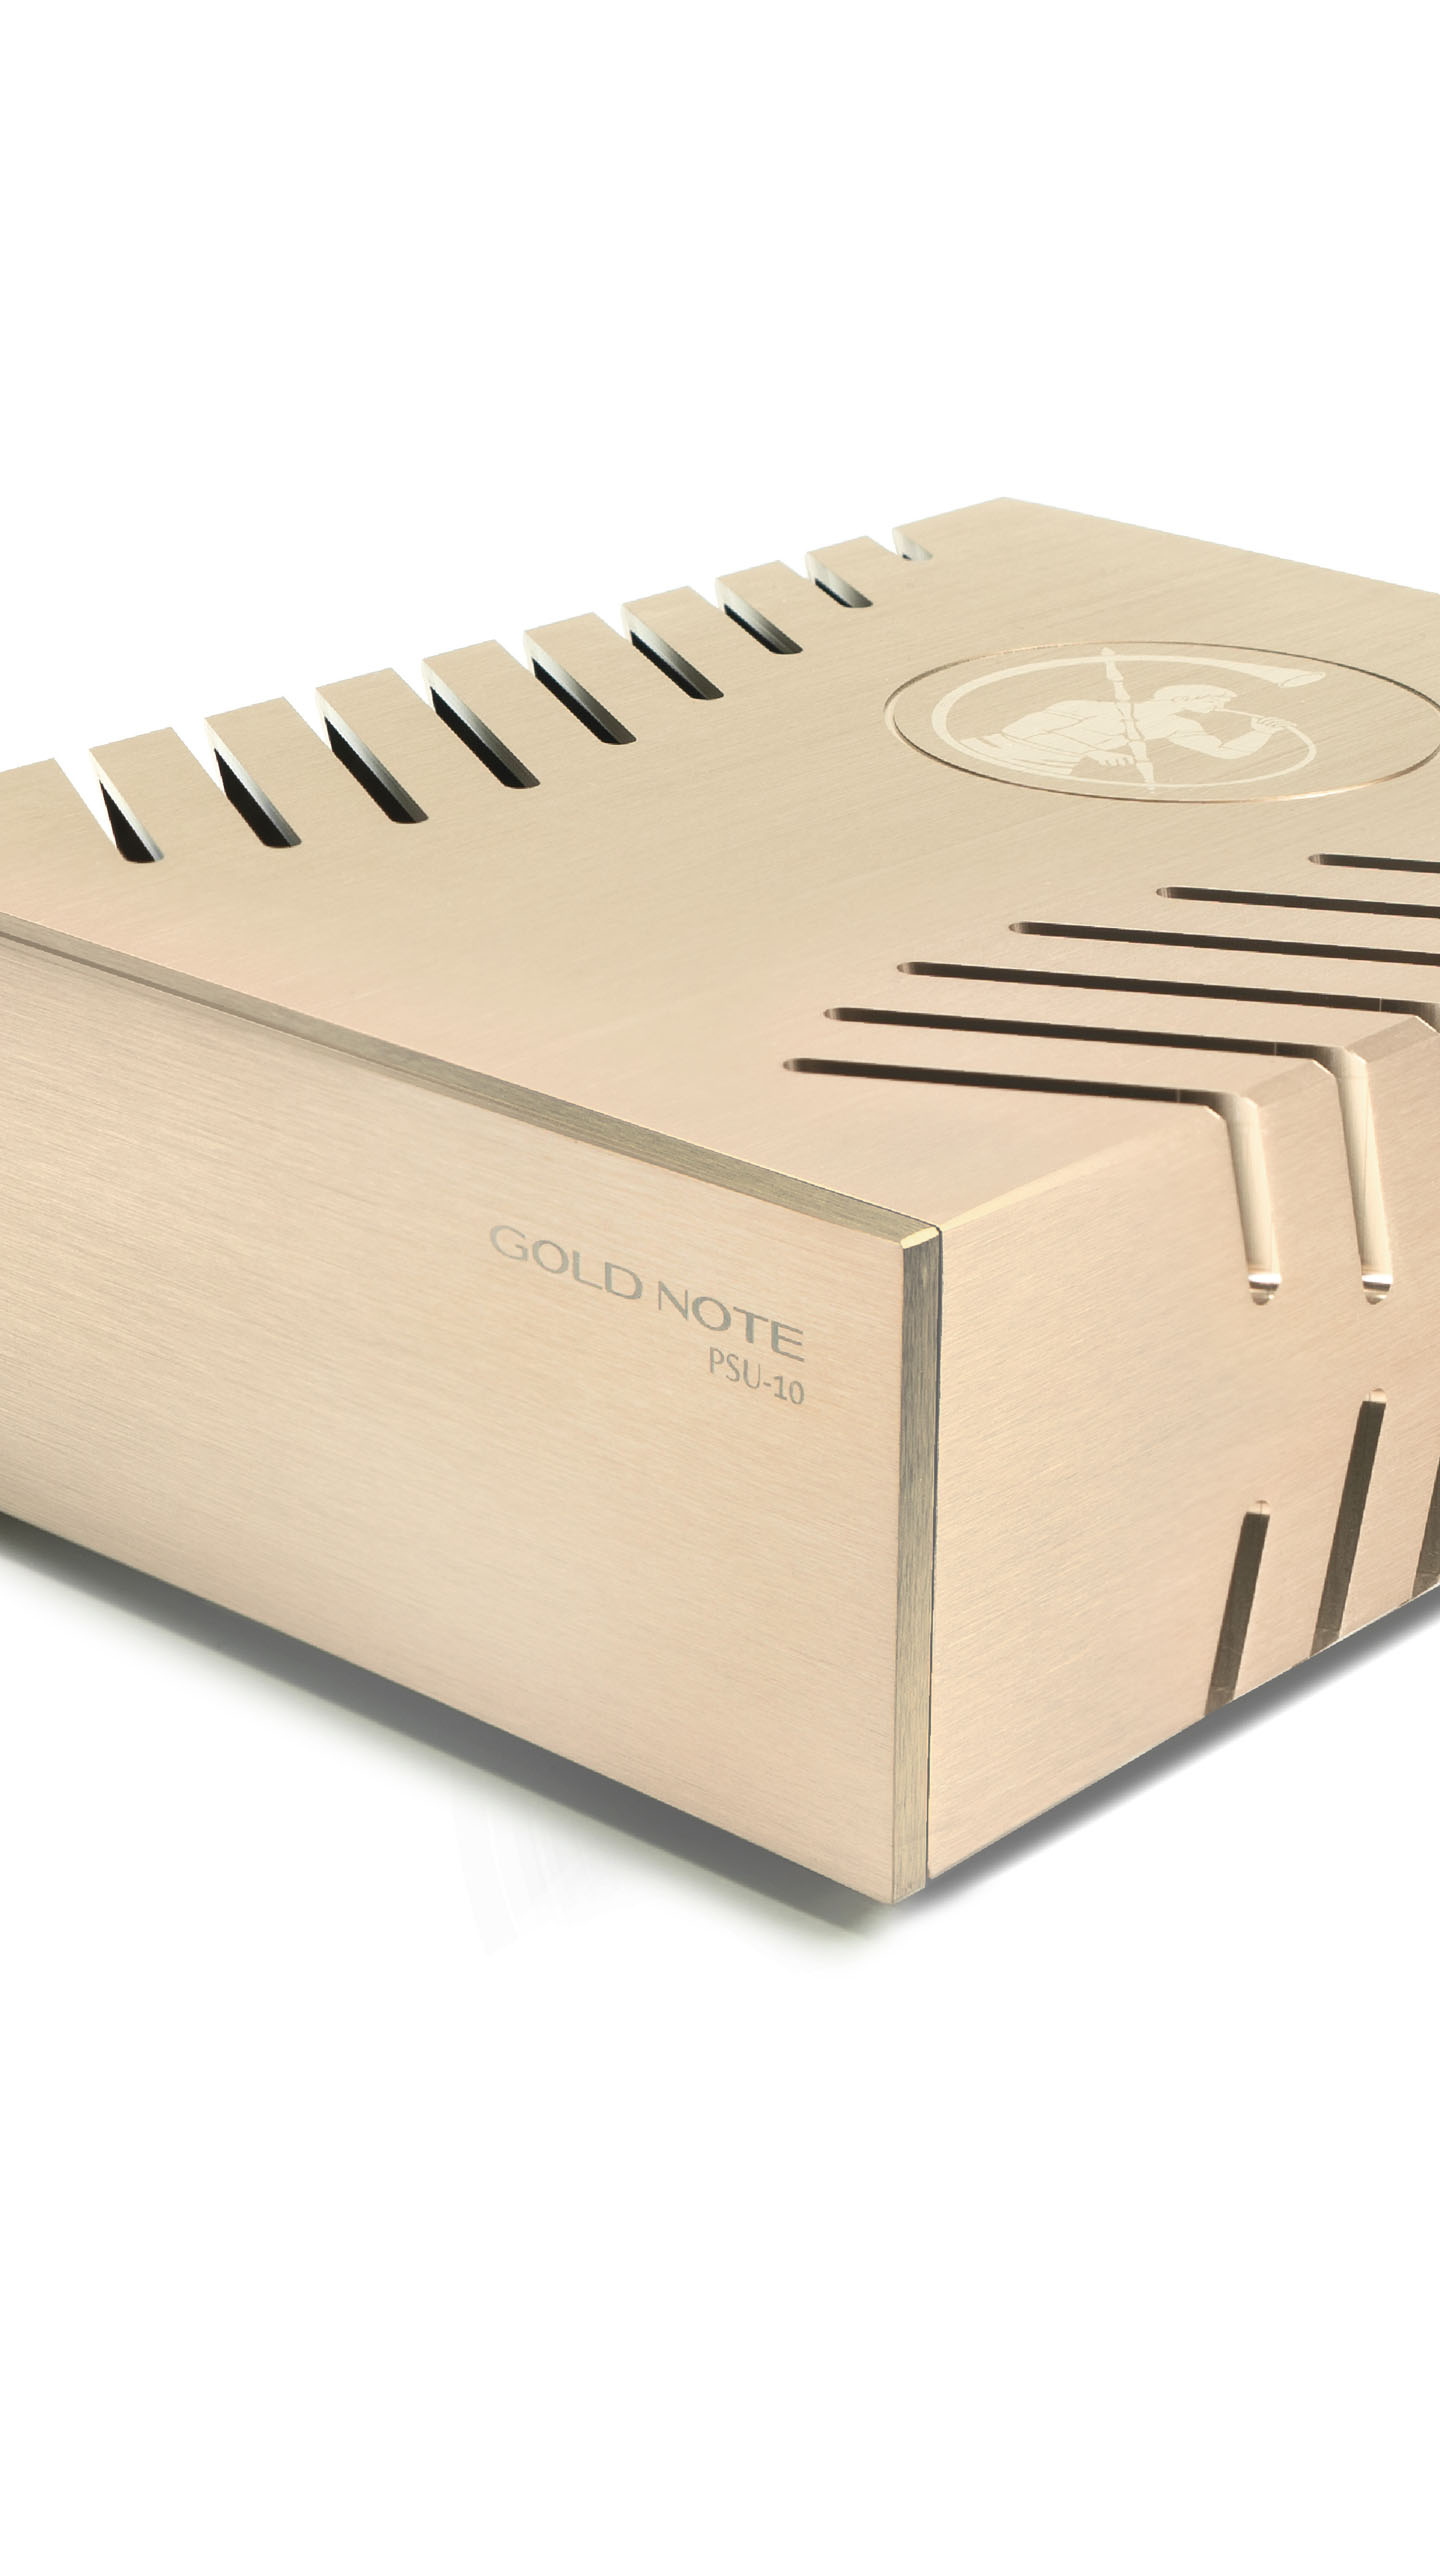 Gold Note Power Supplies